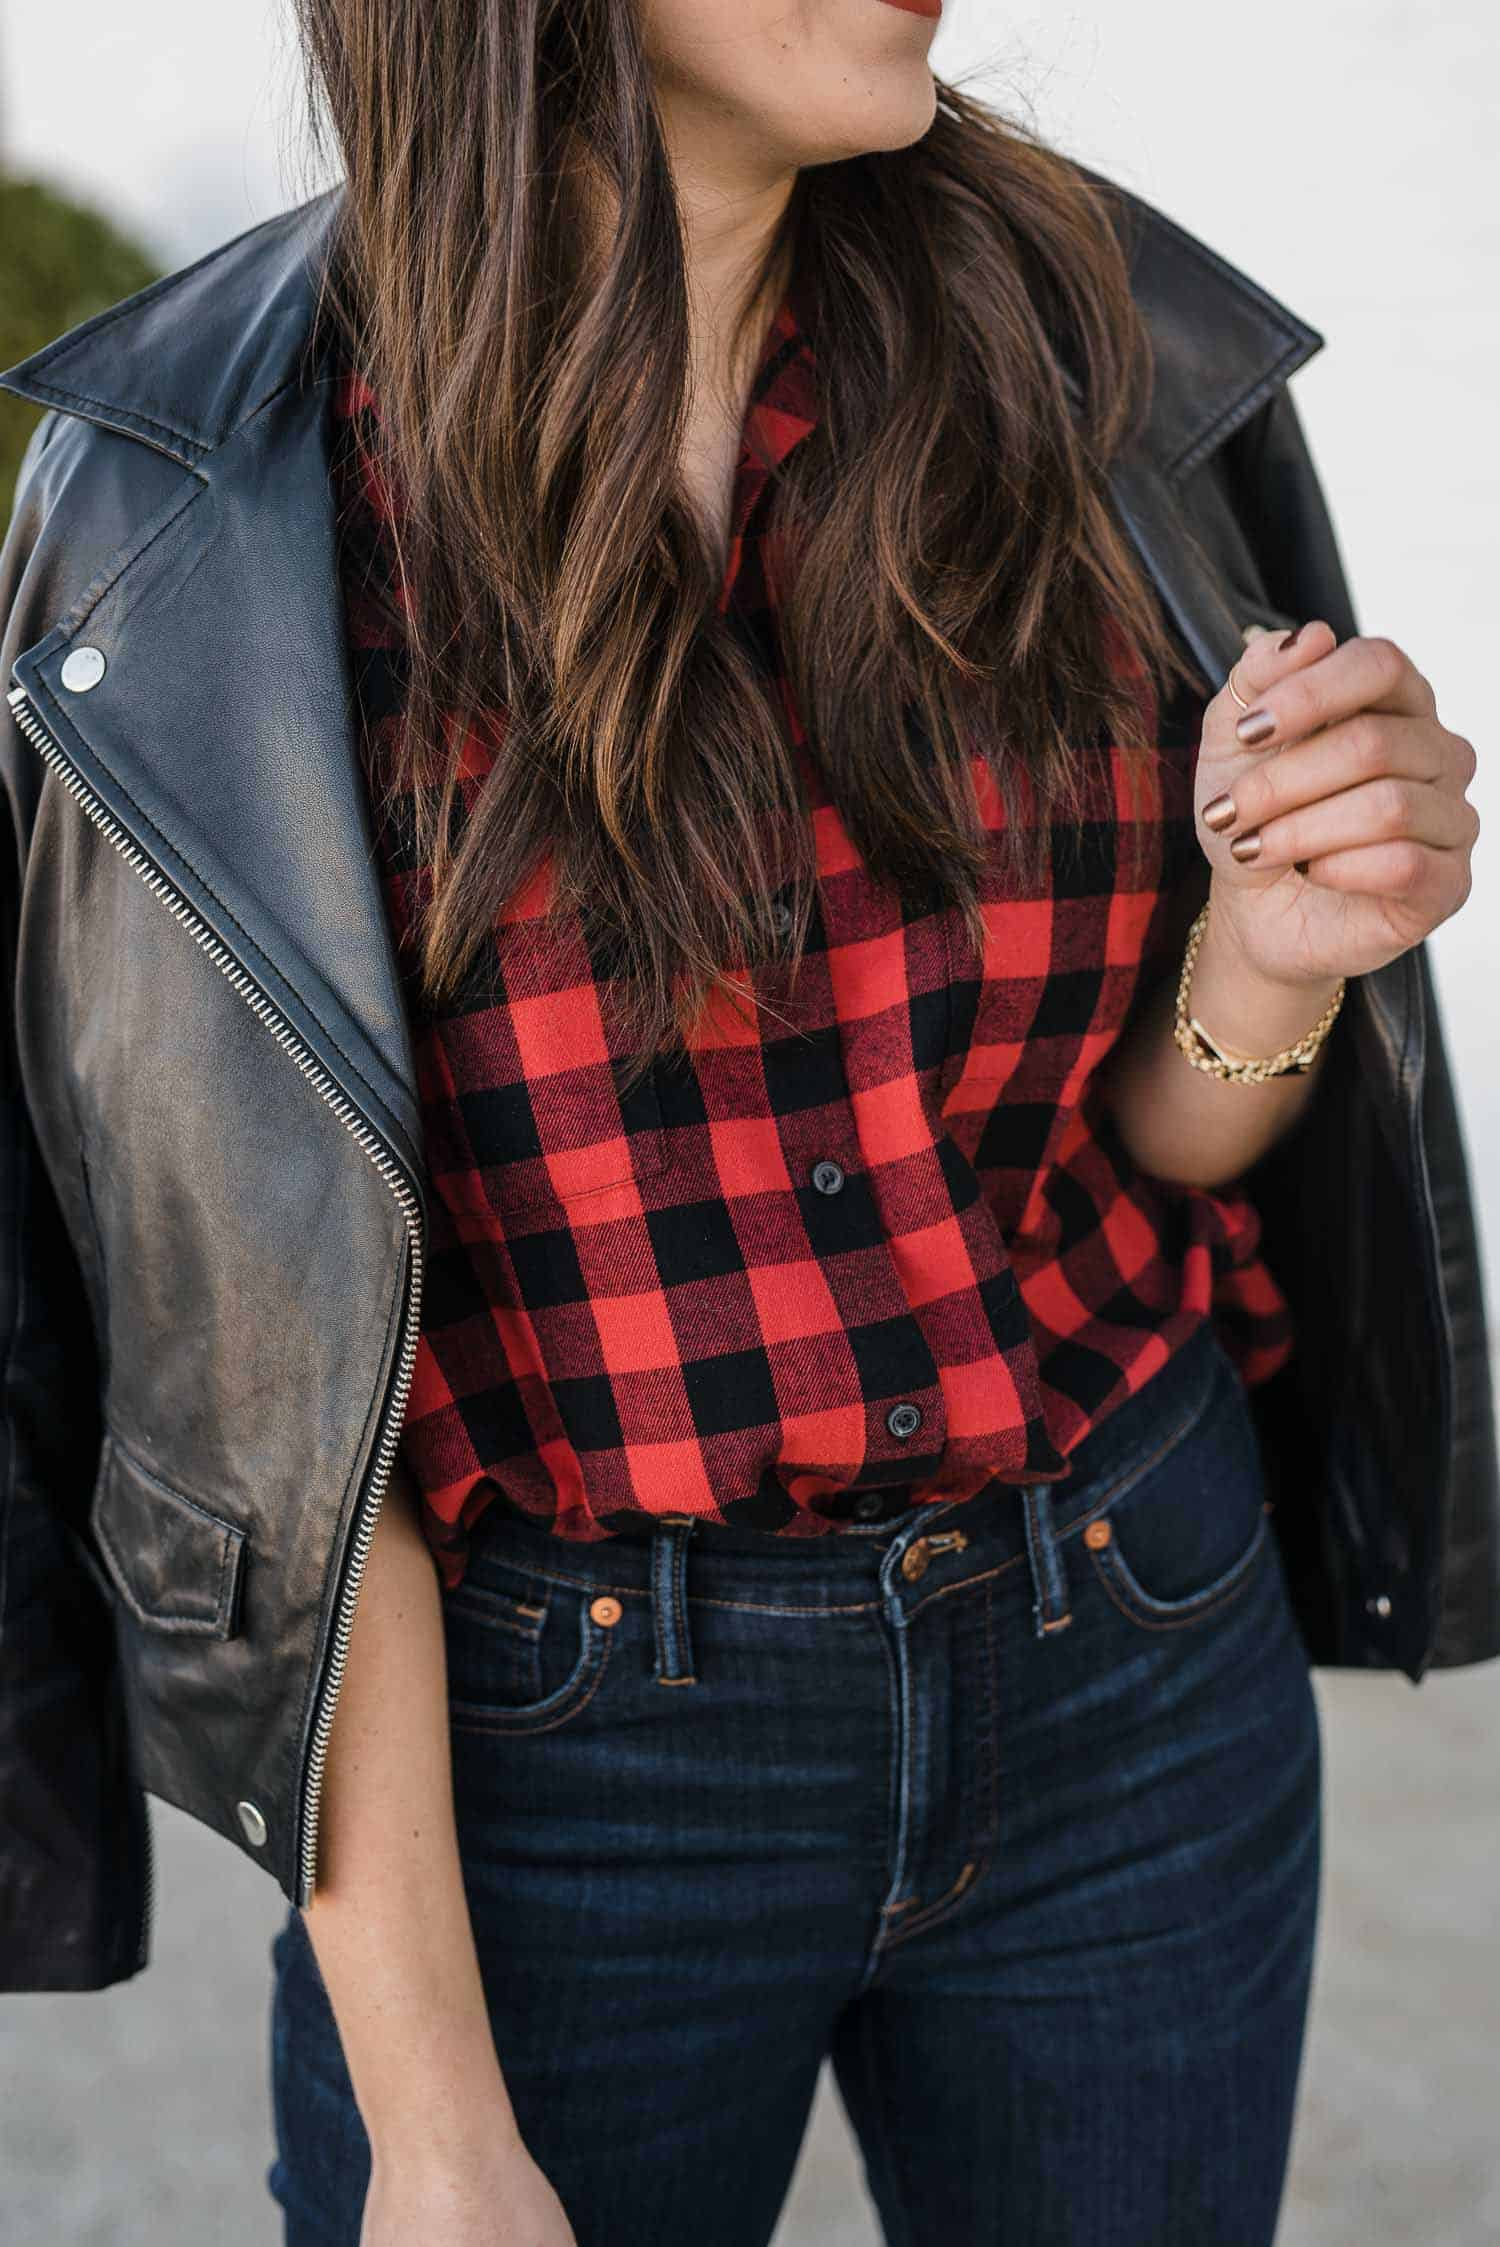 Black leather jacket, plaid shirt and jeans